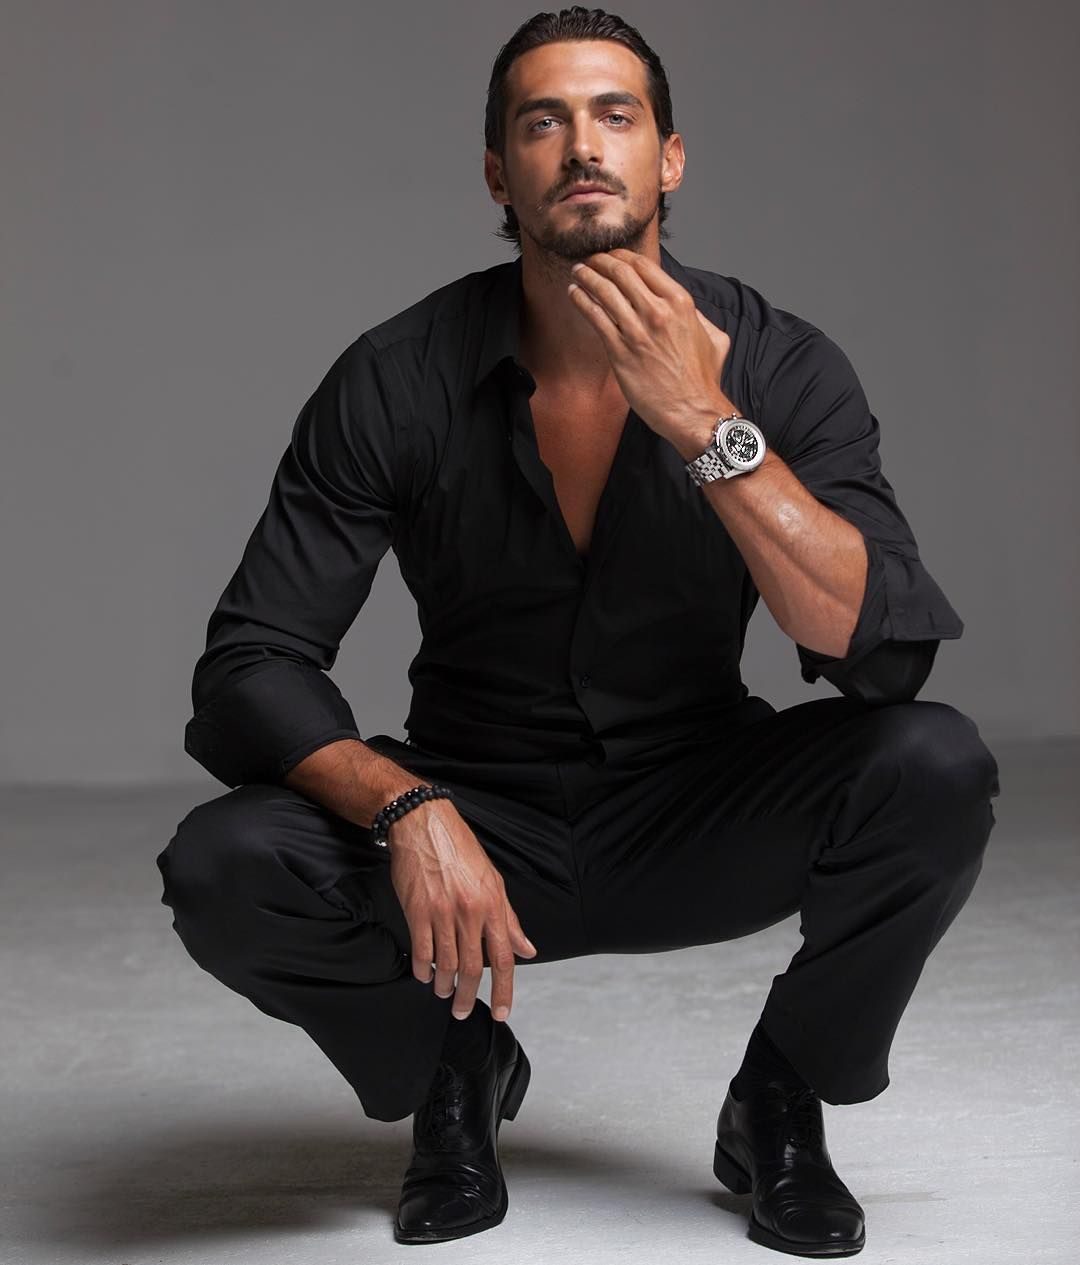 Saturday Man Candy The Hottest Dads On The Planet: Dusan Susnjar Yes Please